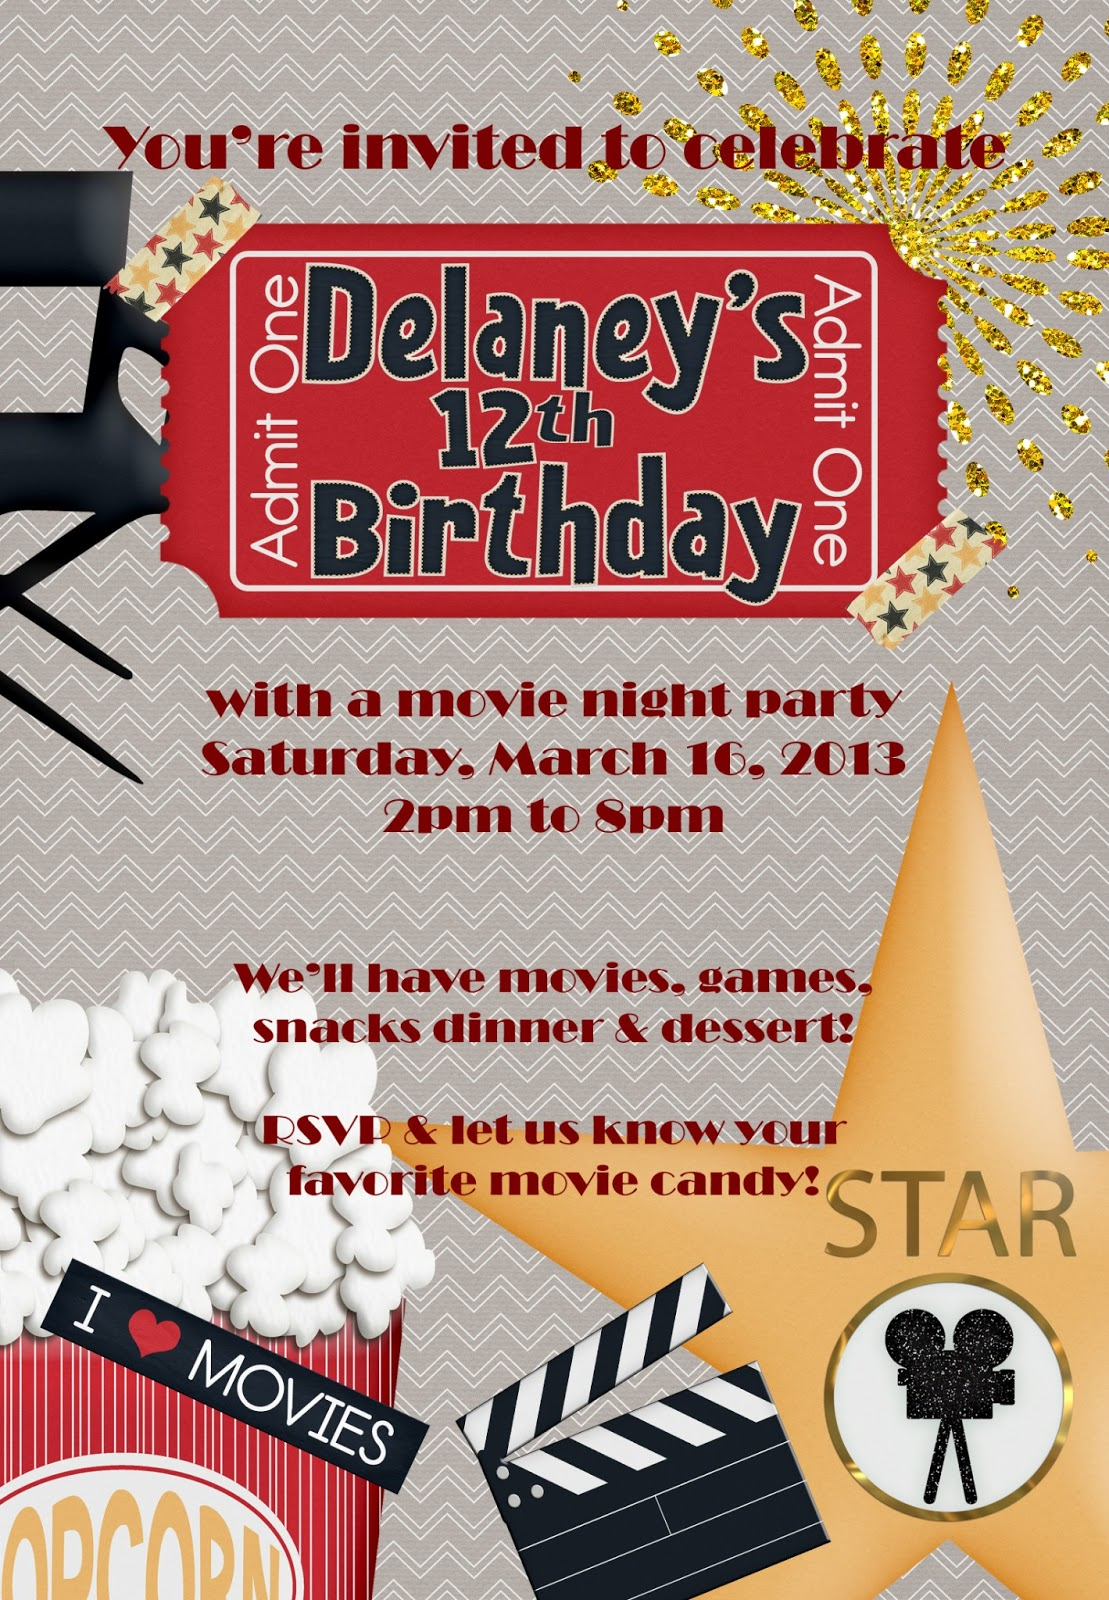 Movie Birthday Party Invitation as beautiful invitations design